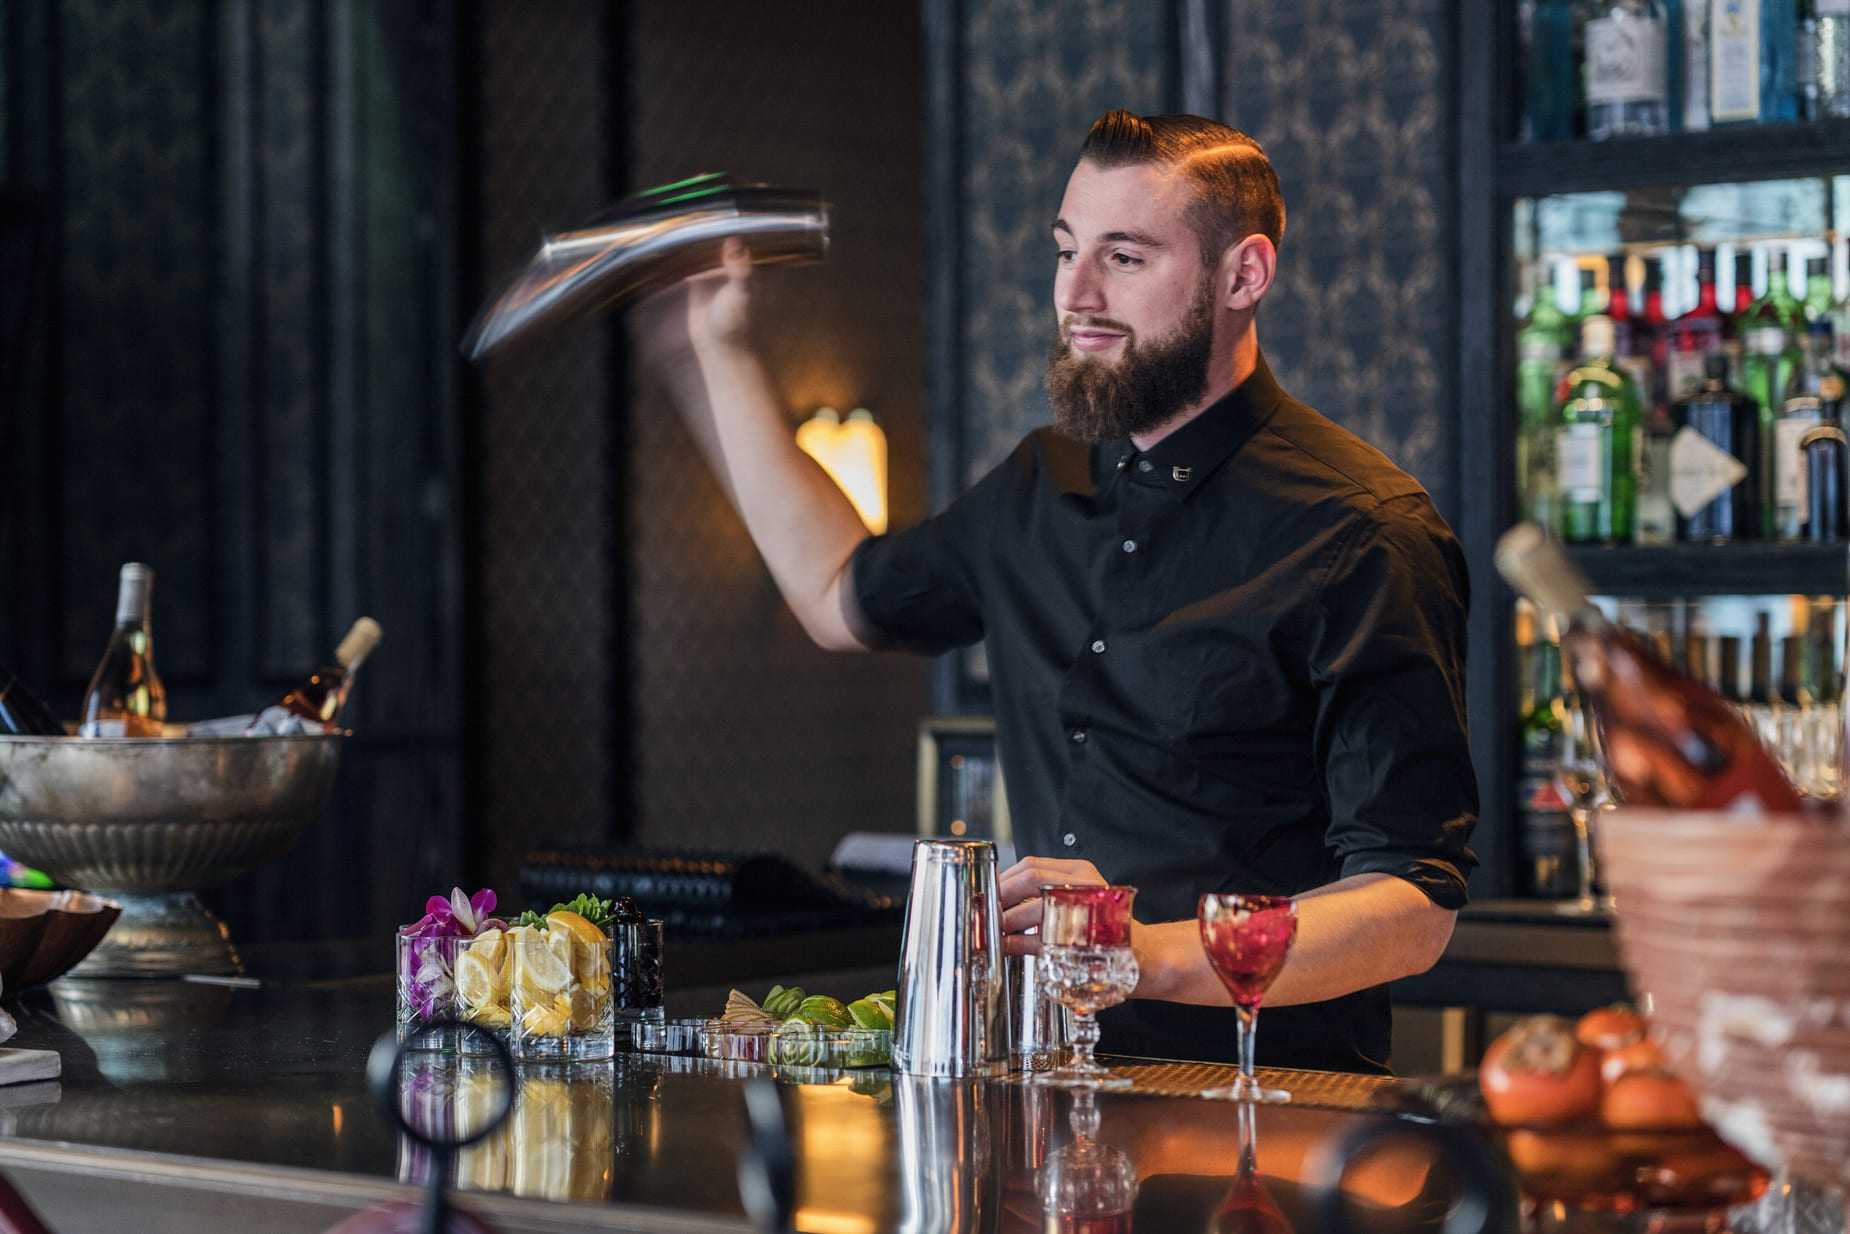 Bartender creating a drink at Proper Hotel